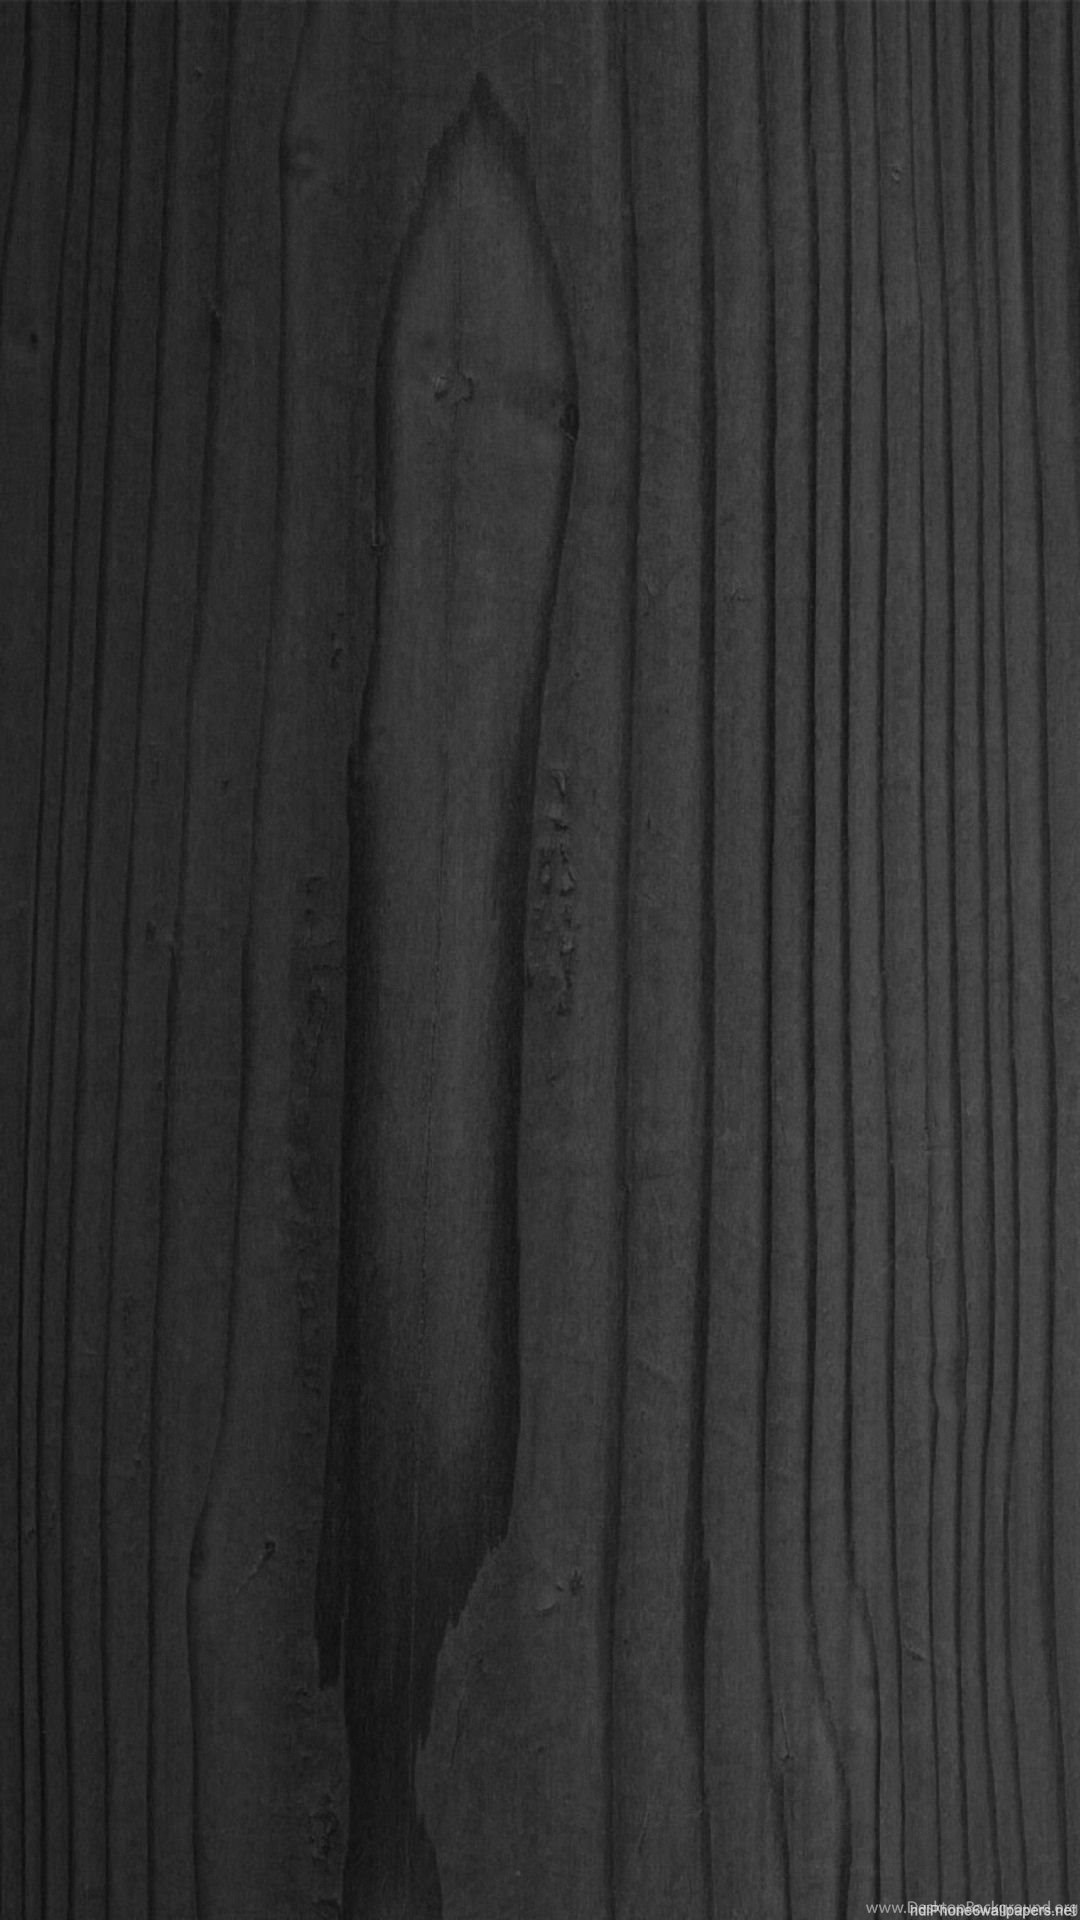 Wood black iphone 6 wallpapers hd and 1080p 6 plus wallpapers - Original Size 207 7kb